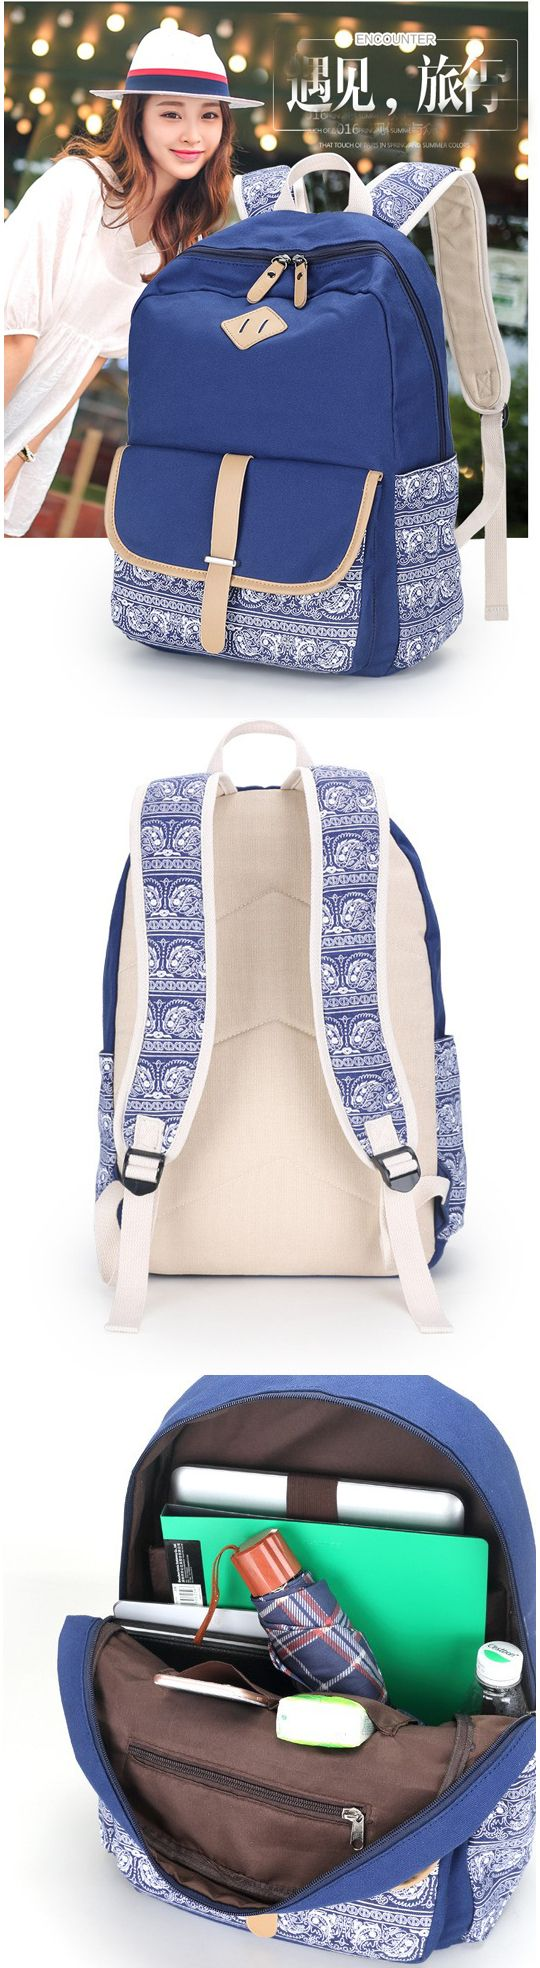 2017 Fashion Lace Printed Computer Bag Canvas Travel Bag School Bag Backpack school bags for teens backpacks student,school bags for teens backpacks black,school bags highschool,school bags handbags,school bags large,school bags laptop,school bags college,school bags backpacks,school bags backpacks student,school bags backpacks fashion,school bags backpacks college,school bags black